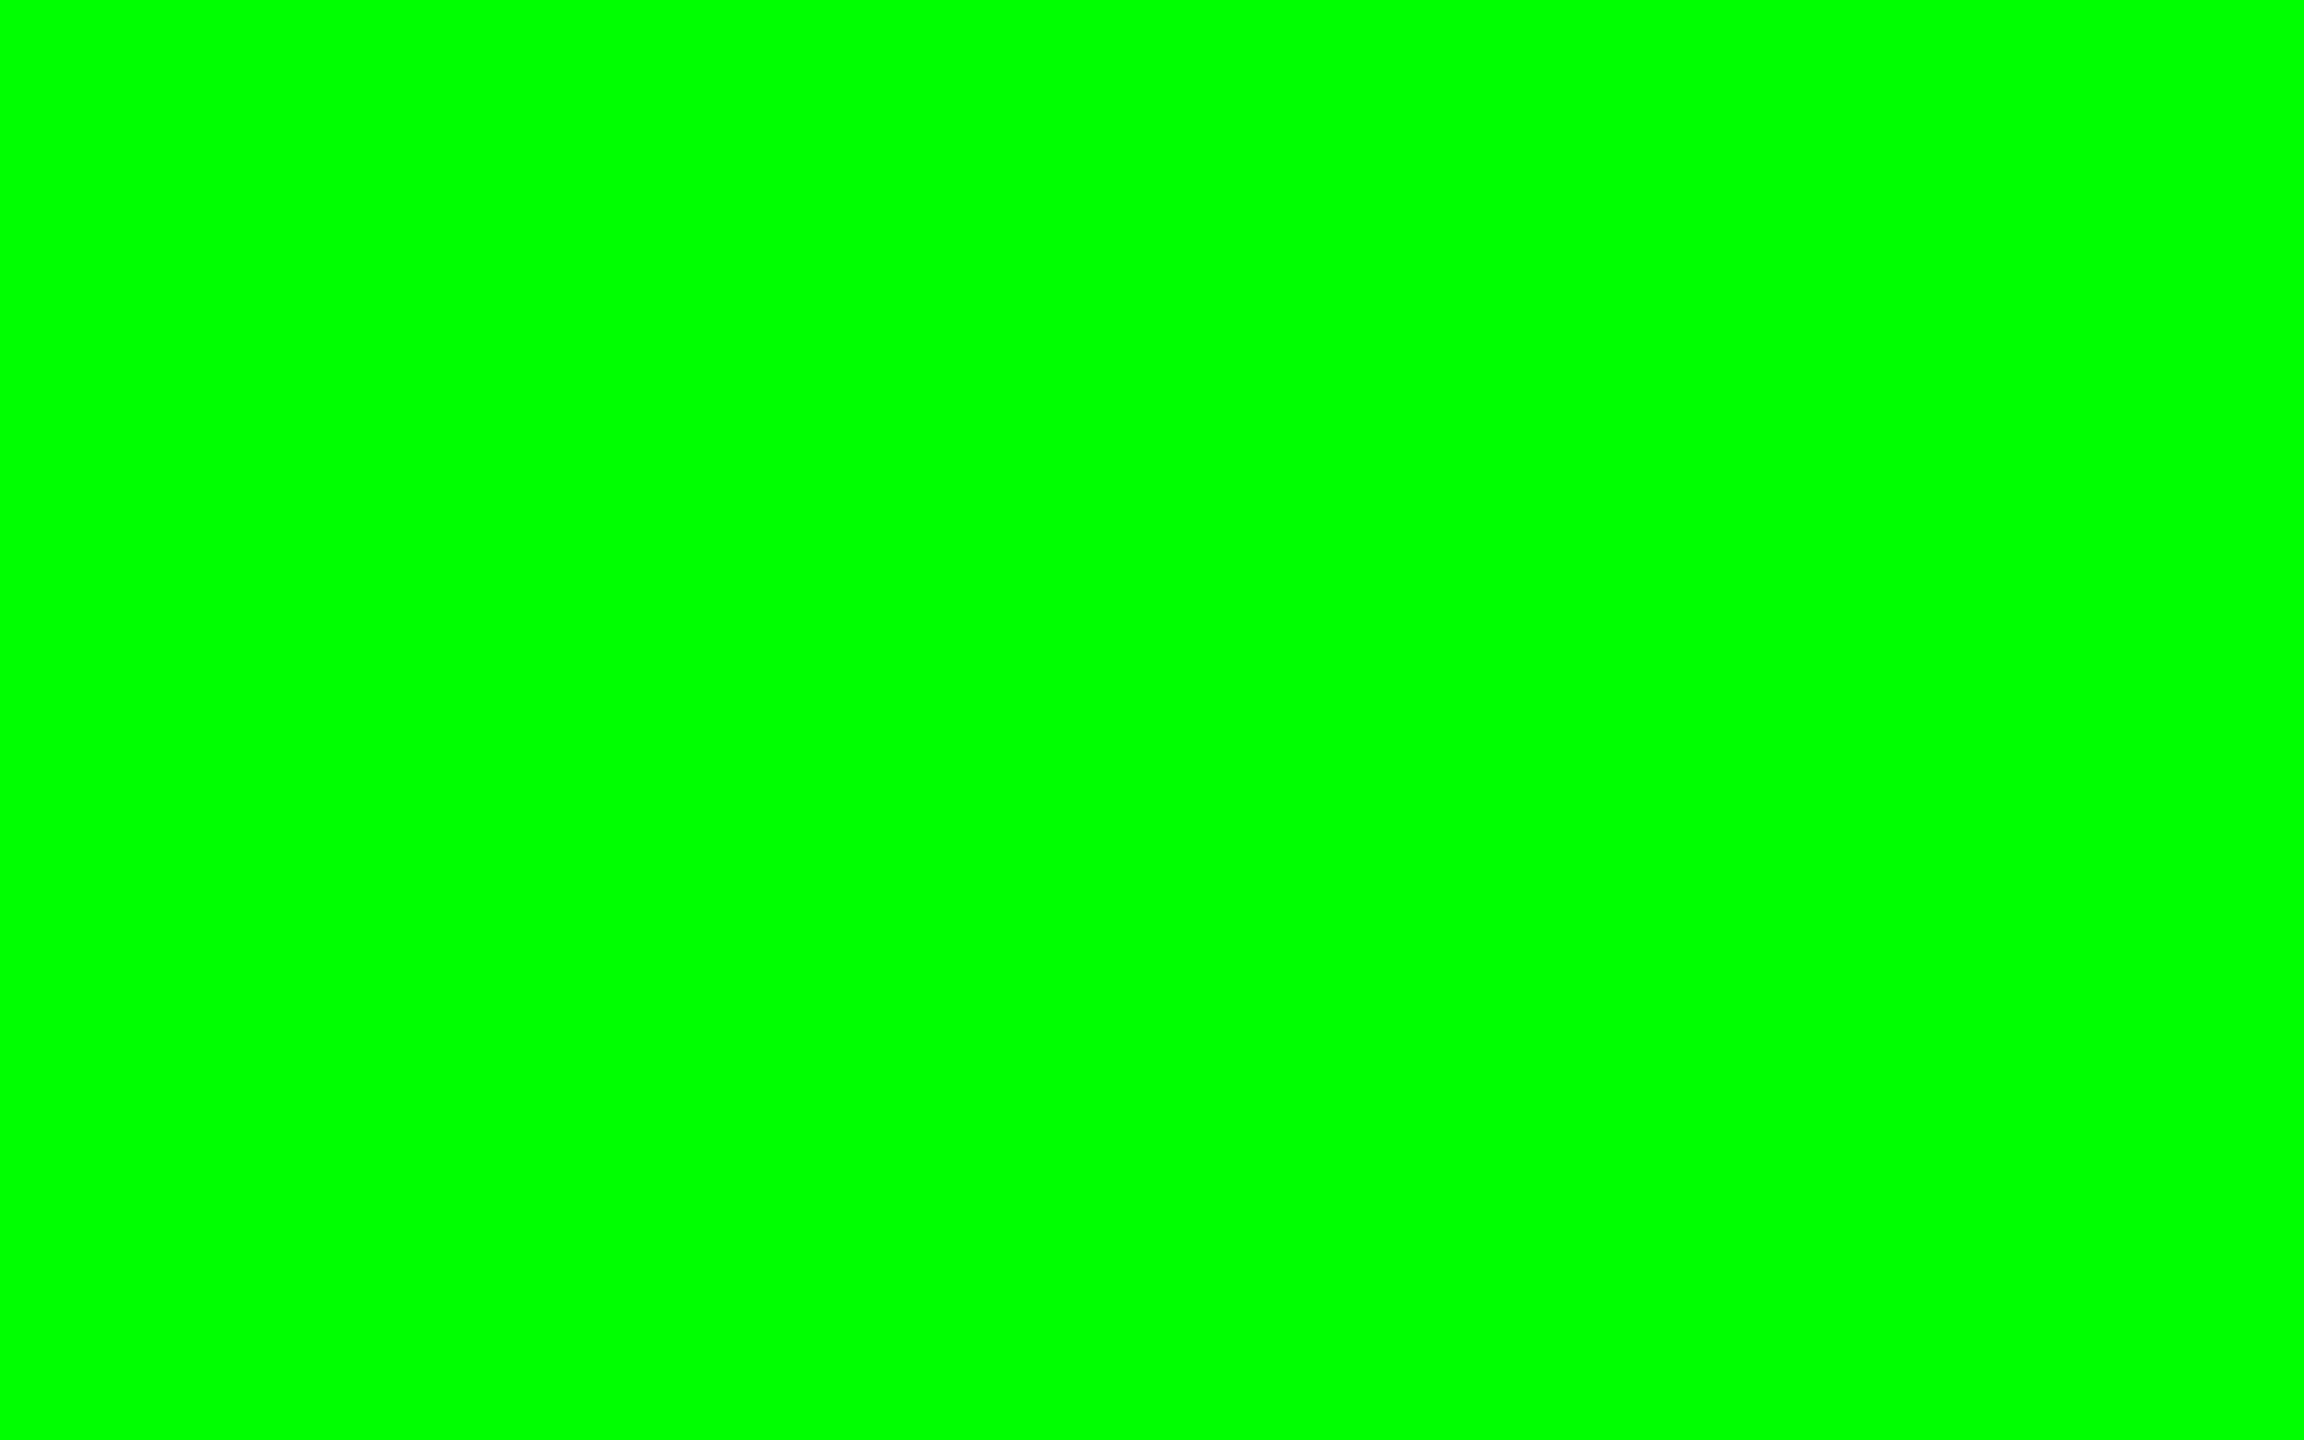 2304x1440 Lime Web Green Solid Color Background